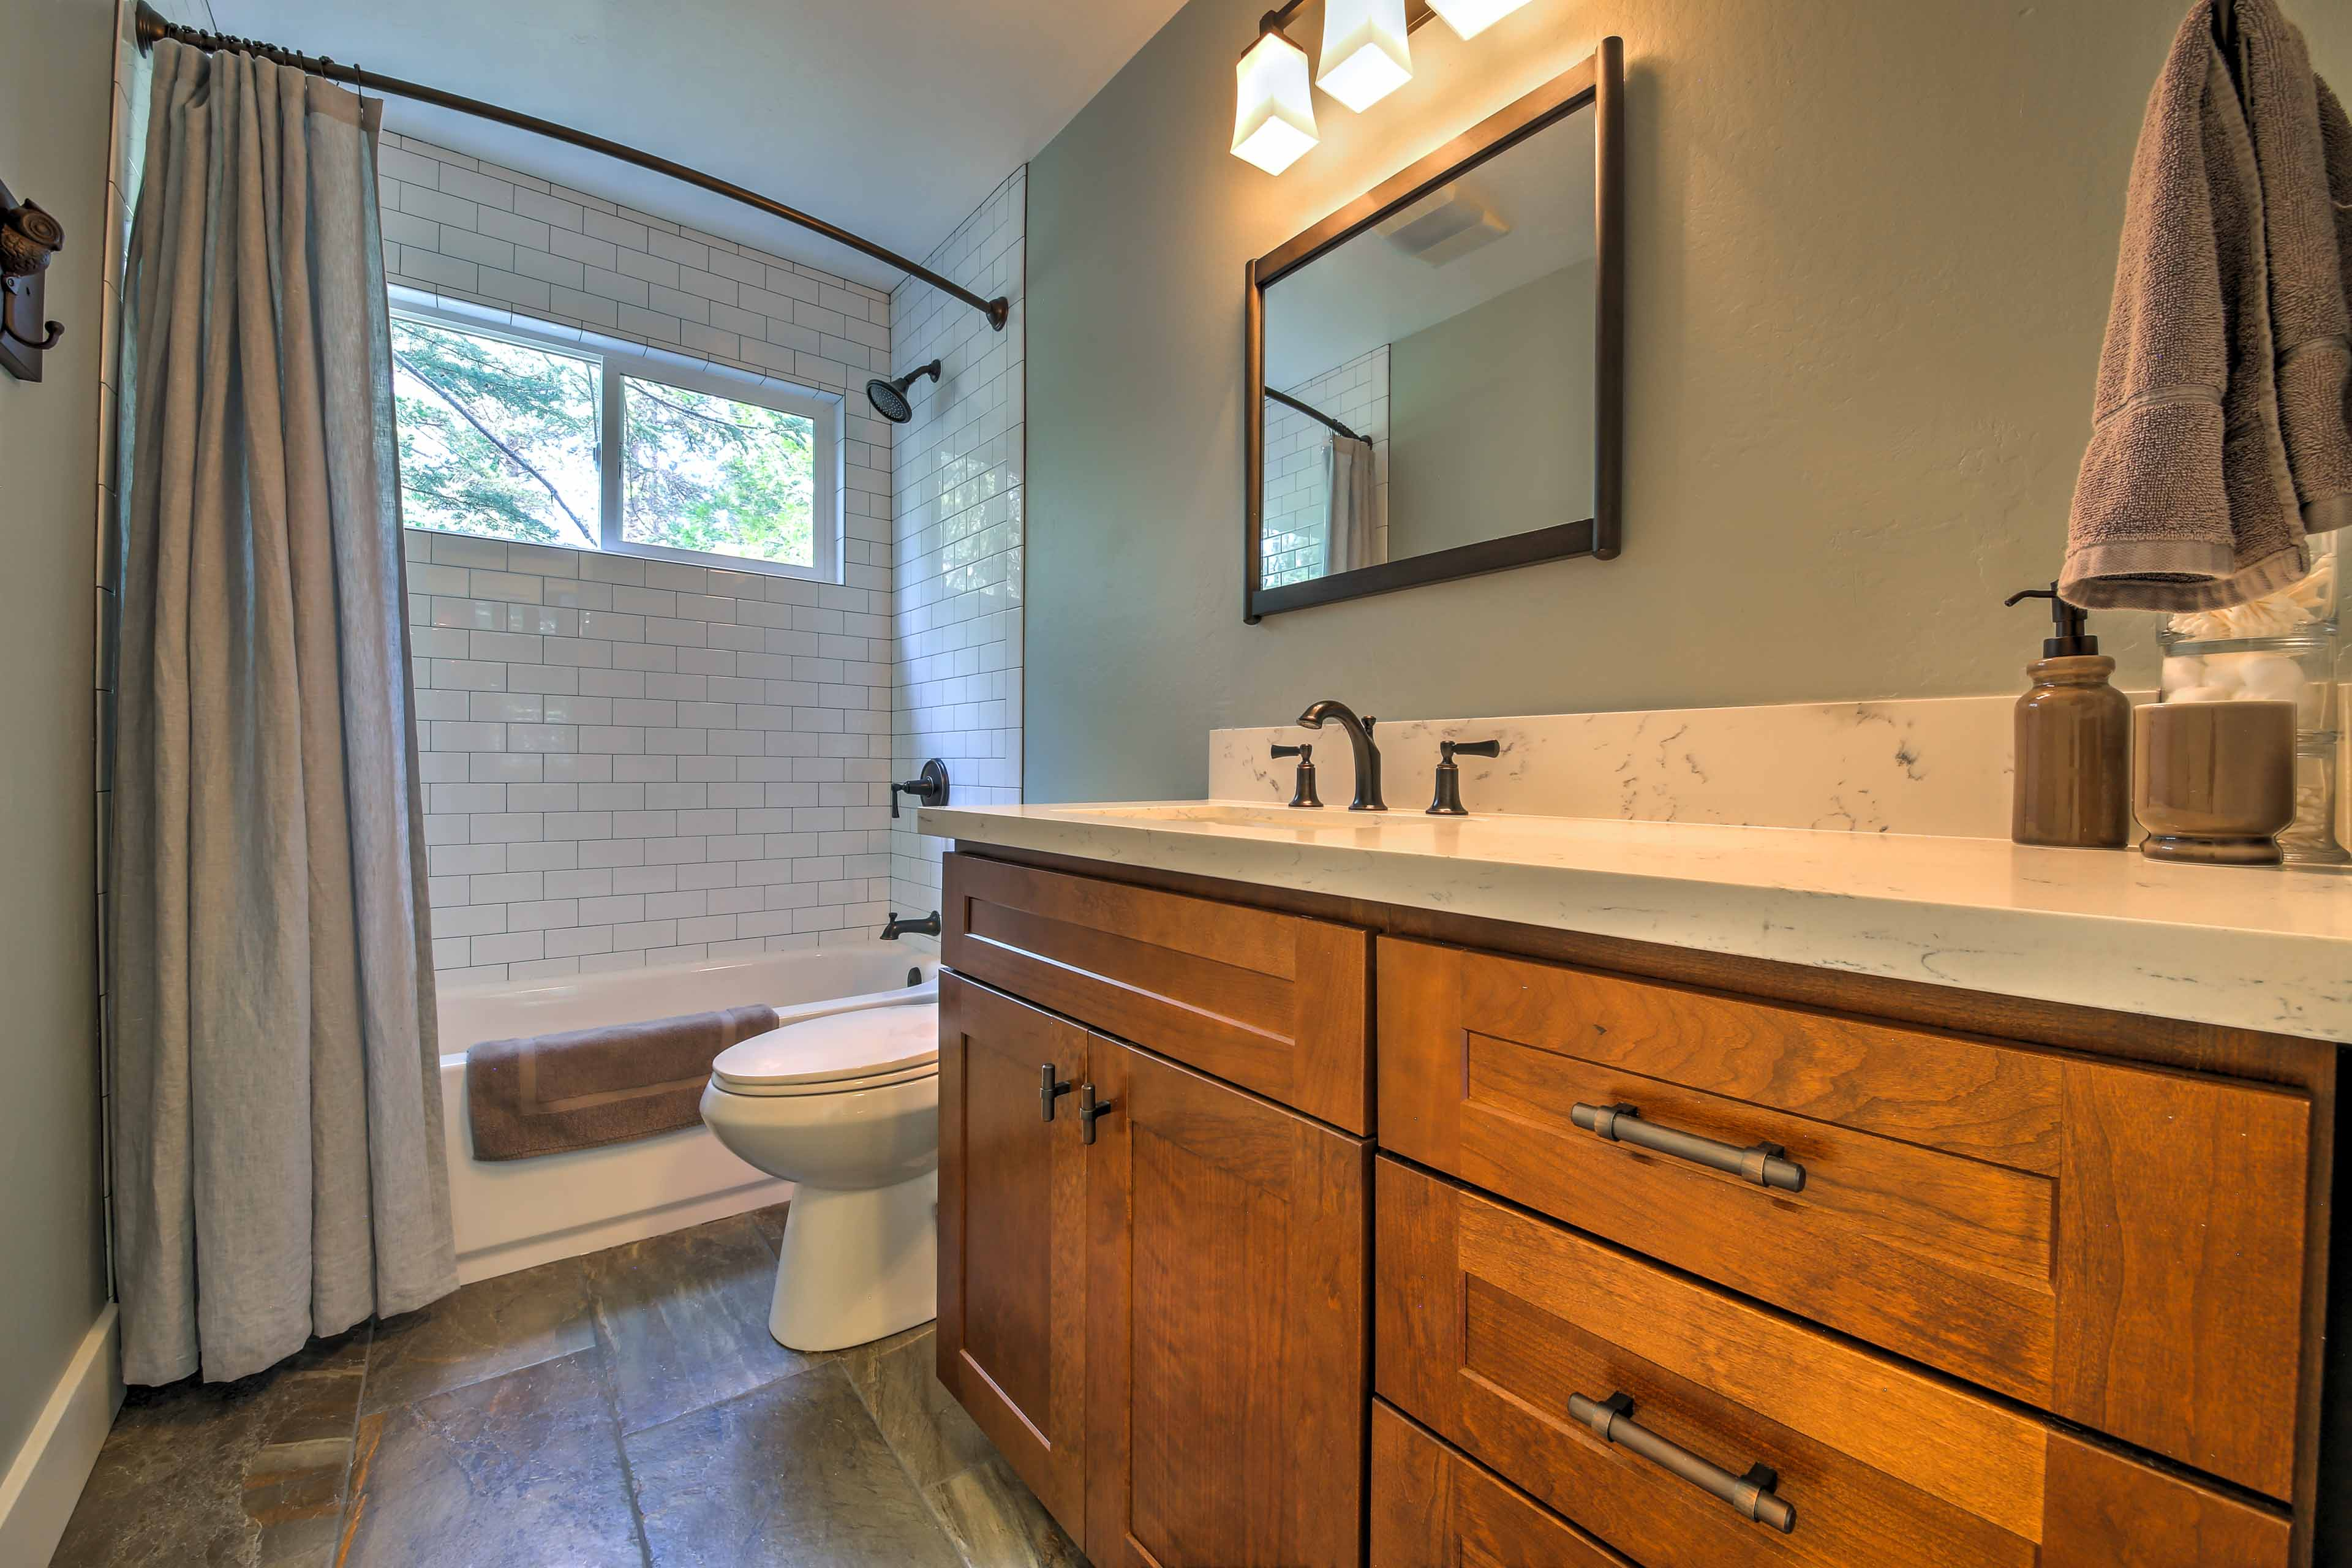 A second full bathroom provides additional privacy for your crew.